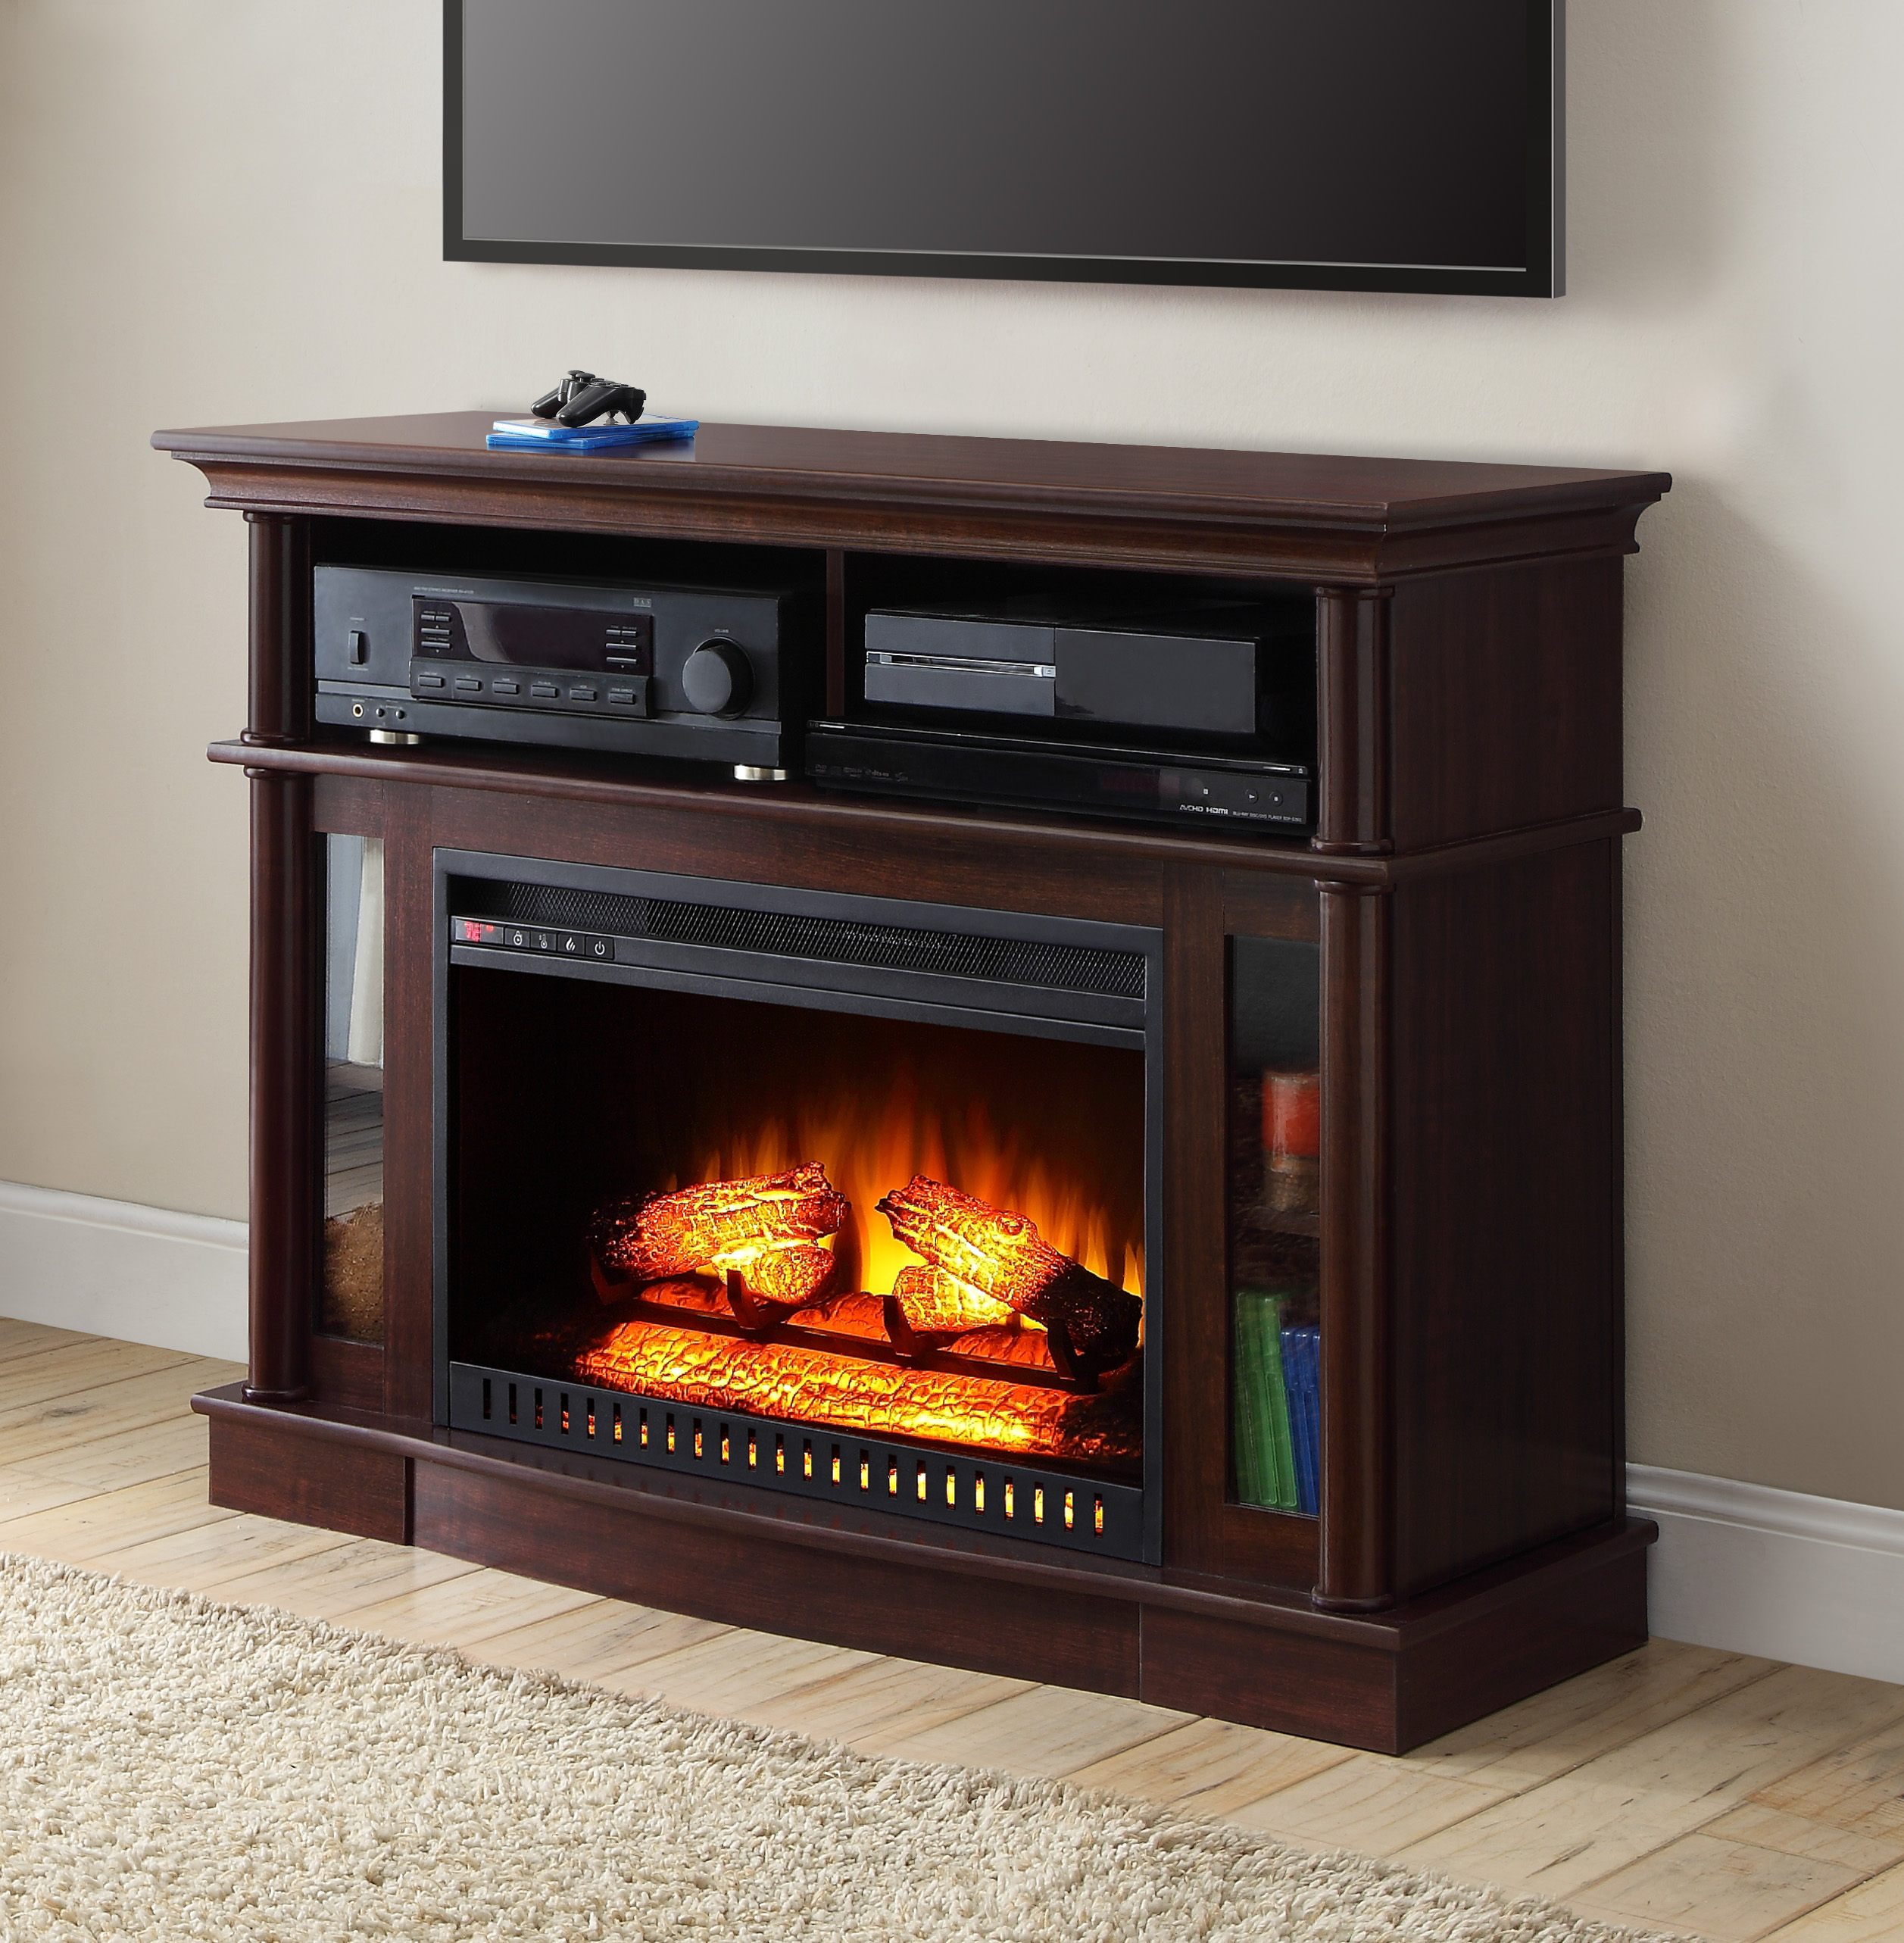 "Buy Better Homes and Gardens Ashwood Road Media Fireplace for TVs up to 45"" at Walmart.com"